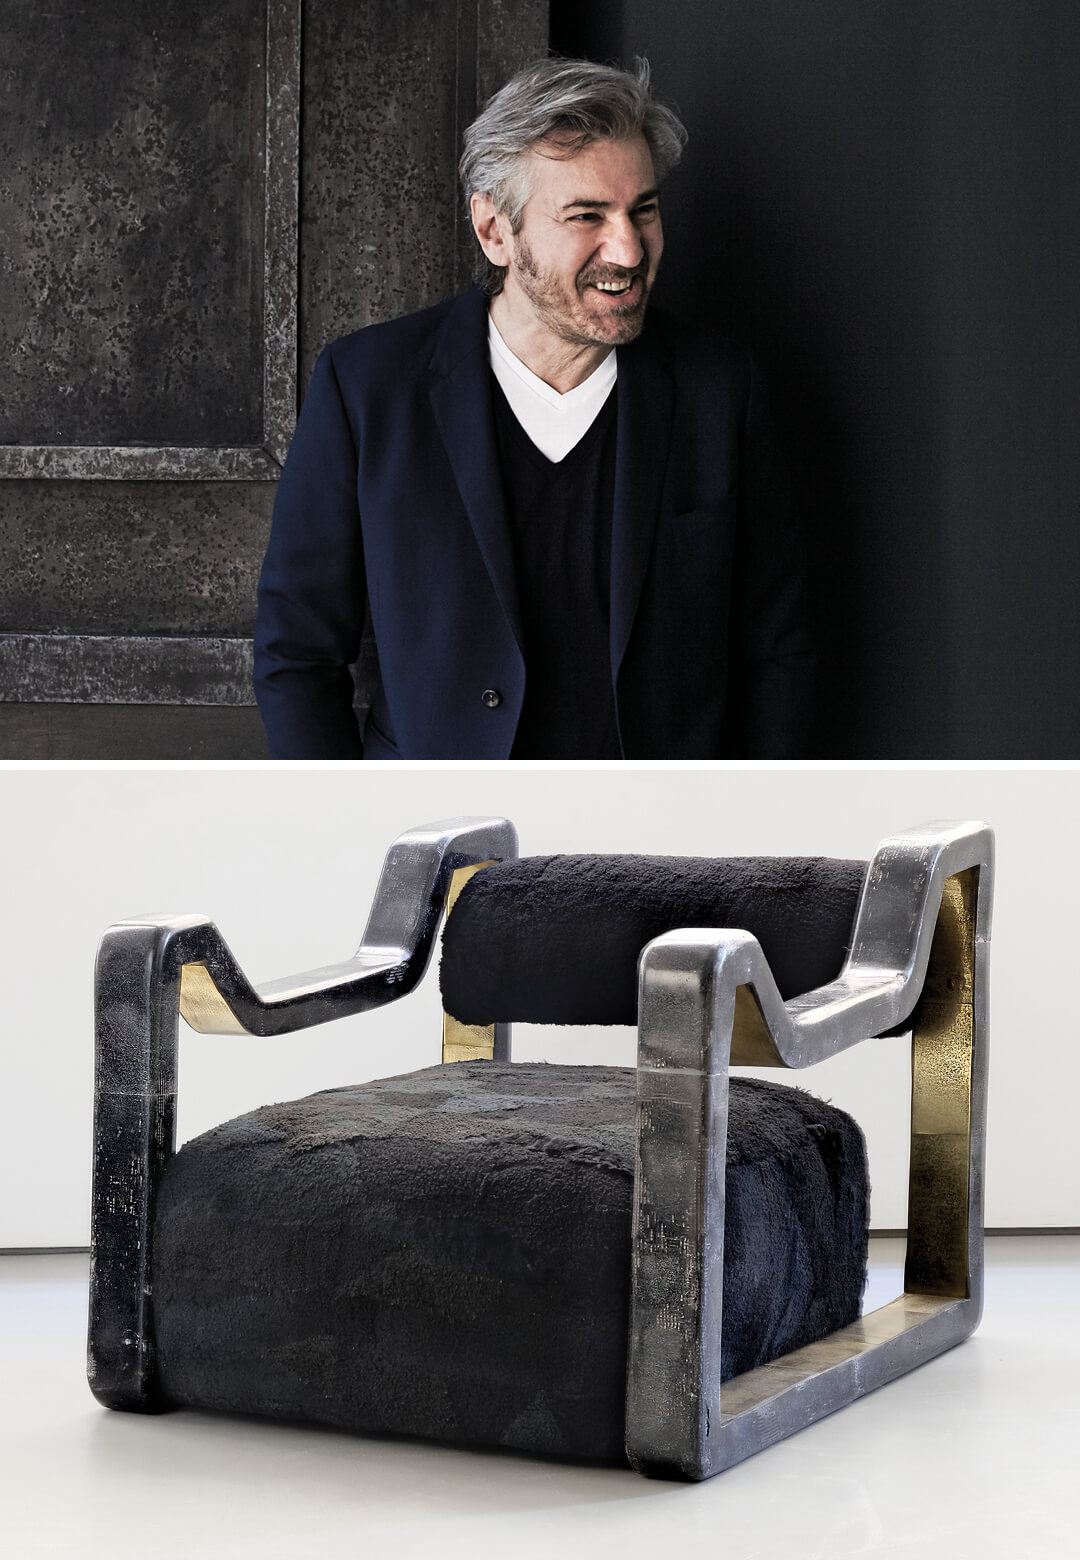 Italian architect and artist Vincenzo De Cotiis (L), DC2013A Armchair (R) from his latest body of work, Crossing Over | Crossing Over | Vincenzo De Cotiis | STIRworld